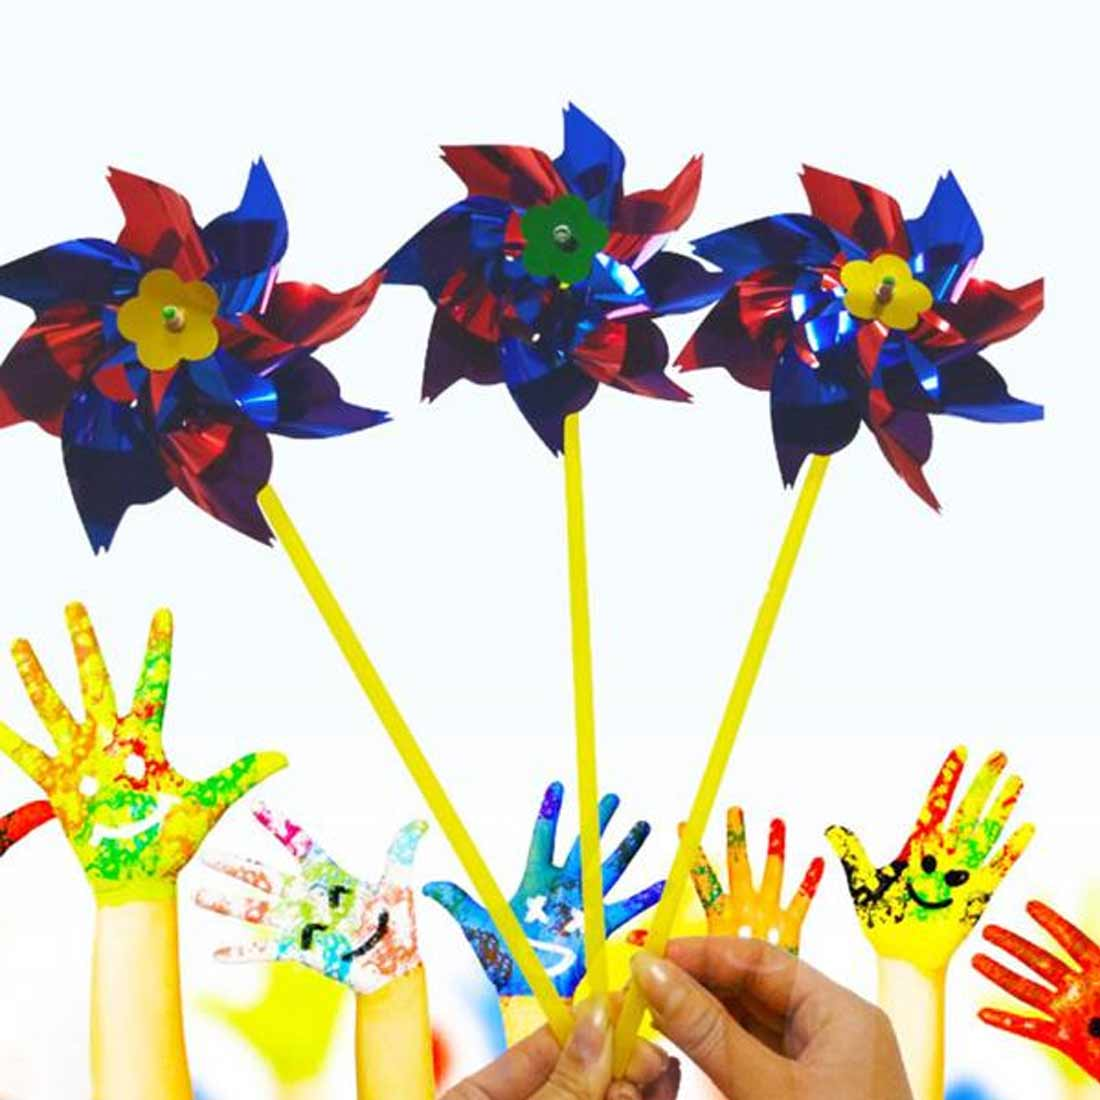 10pcs Garden Lawn Party Decor Toy Gift Boys Girls Plastic Windmill Pinwheel Wind Spinner Kids Toy in Windmill from Toys Hobbies